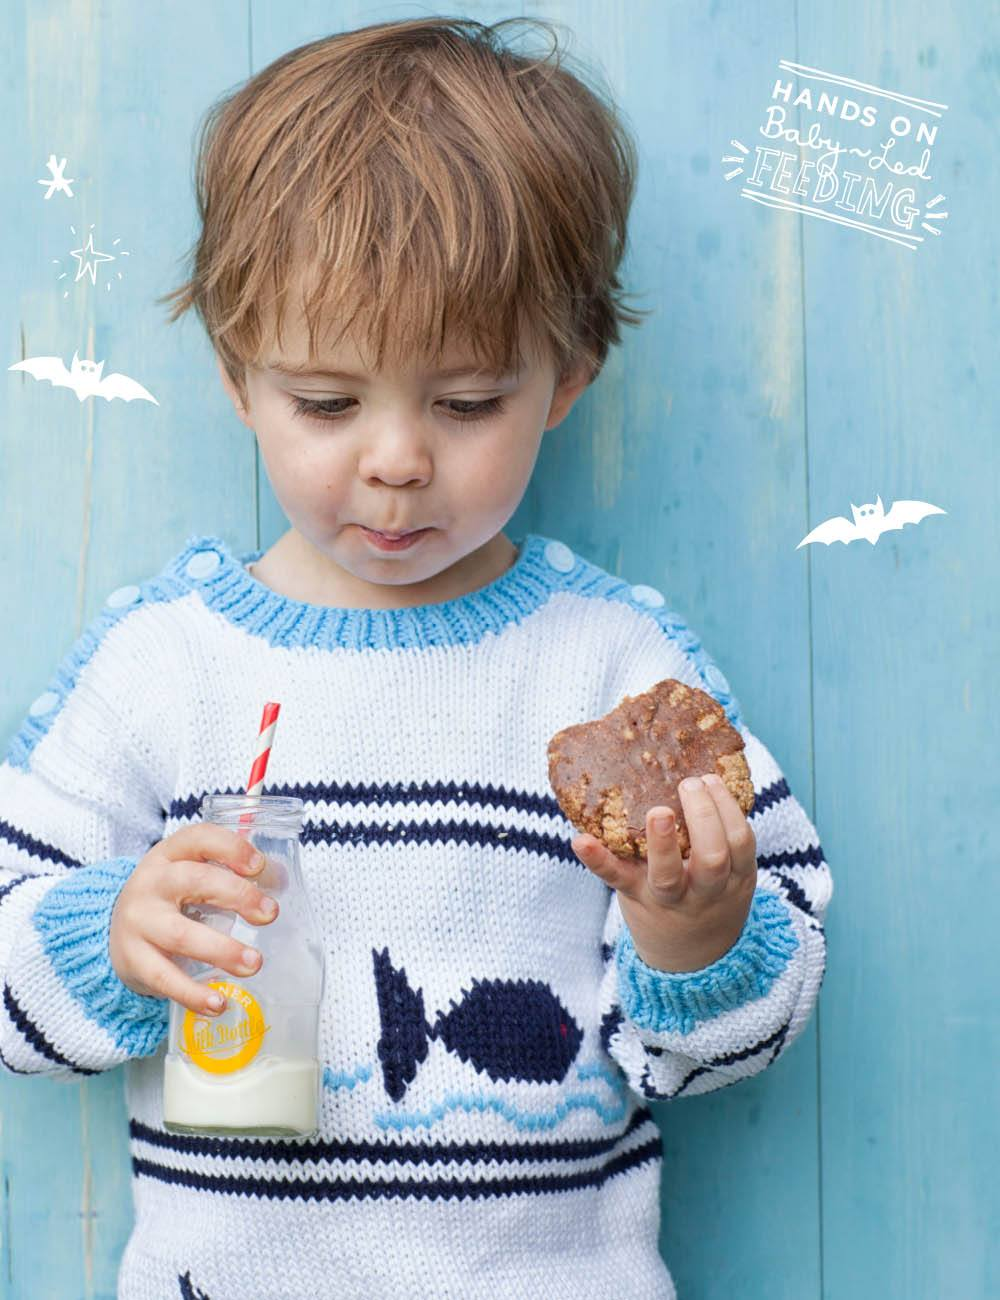 Baby Led Feeding Coconut and Oat Chocolate Cookies. Aileen Cox Blundell Healthy Homemade Baby led weaning Recipes Oscar eating the cookie.